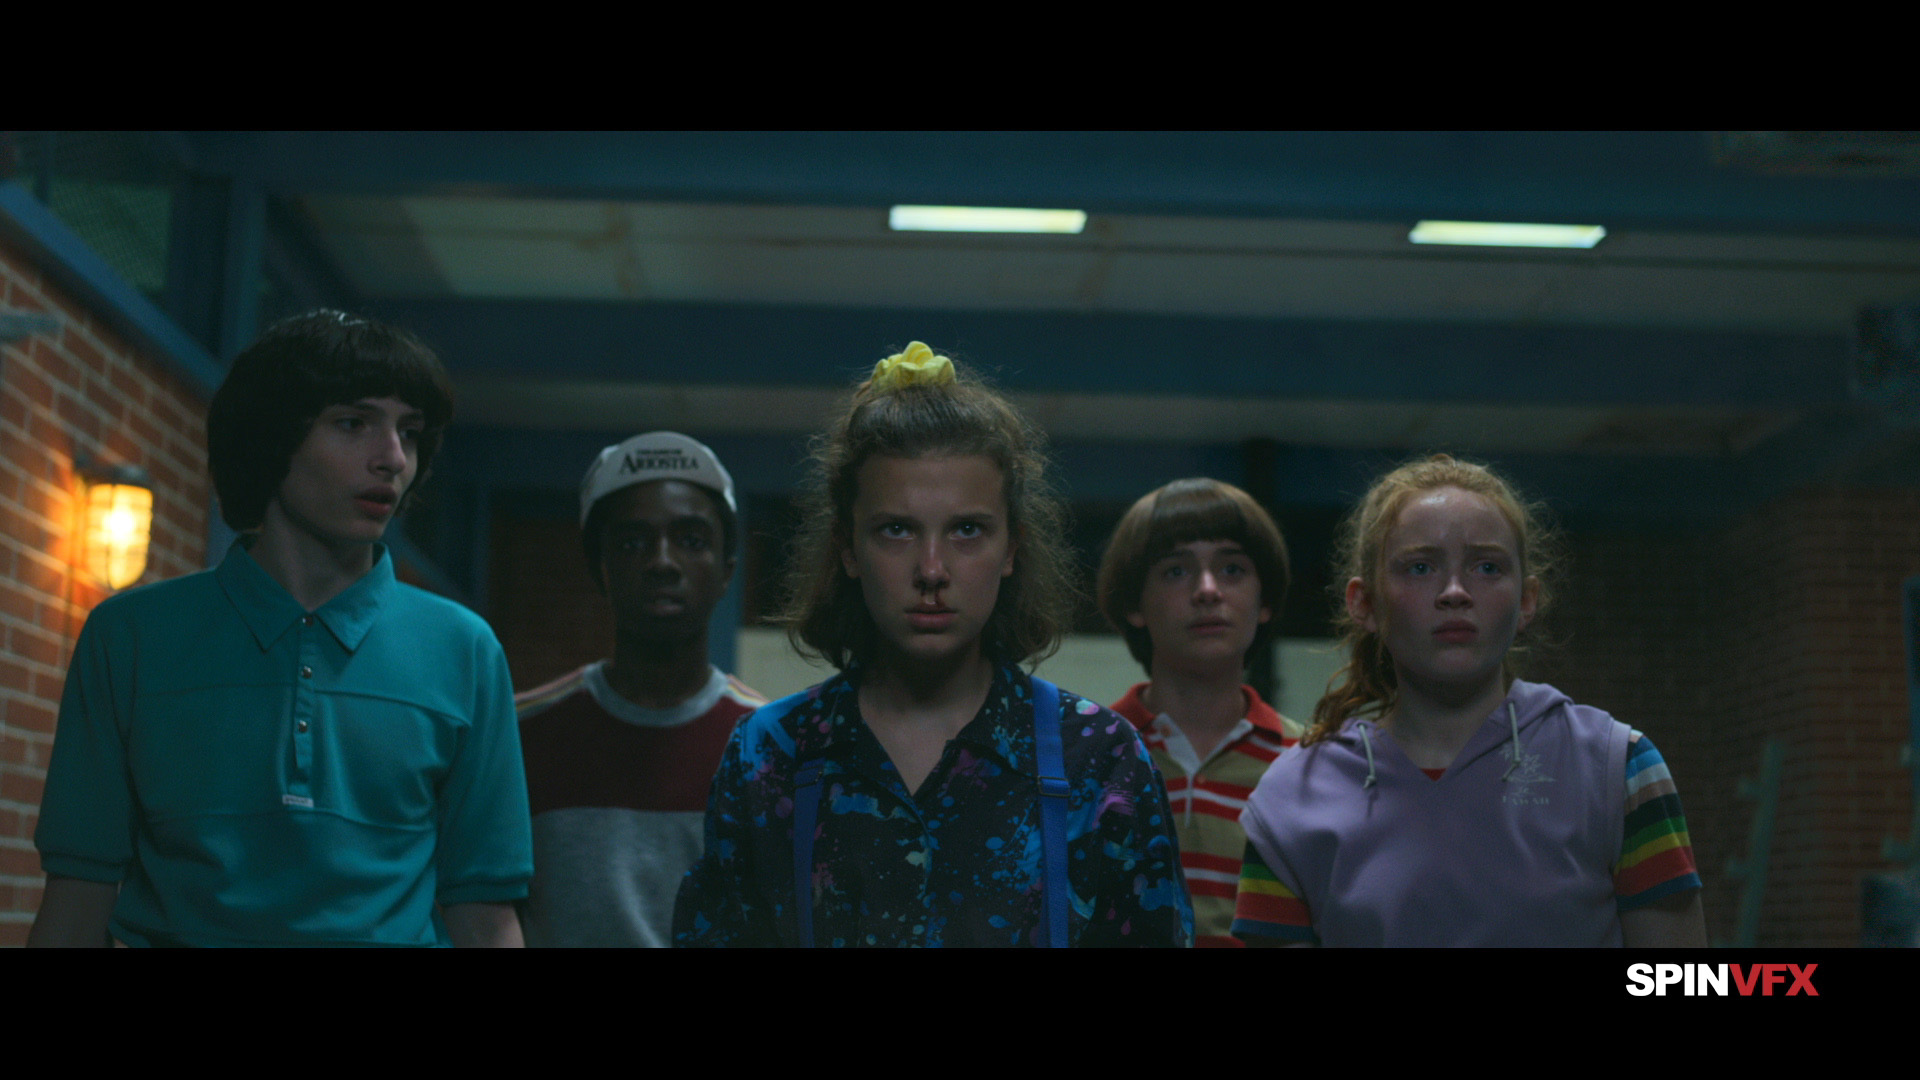 Stranger Things 3 still